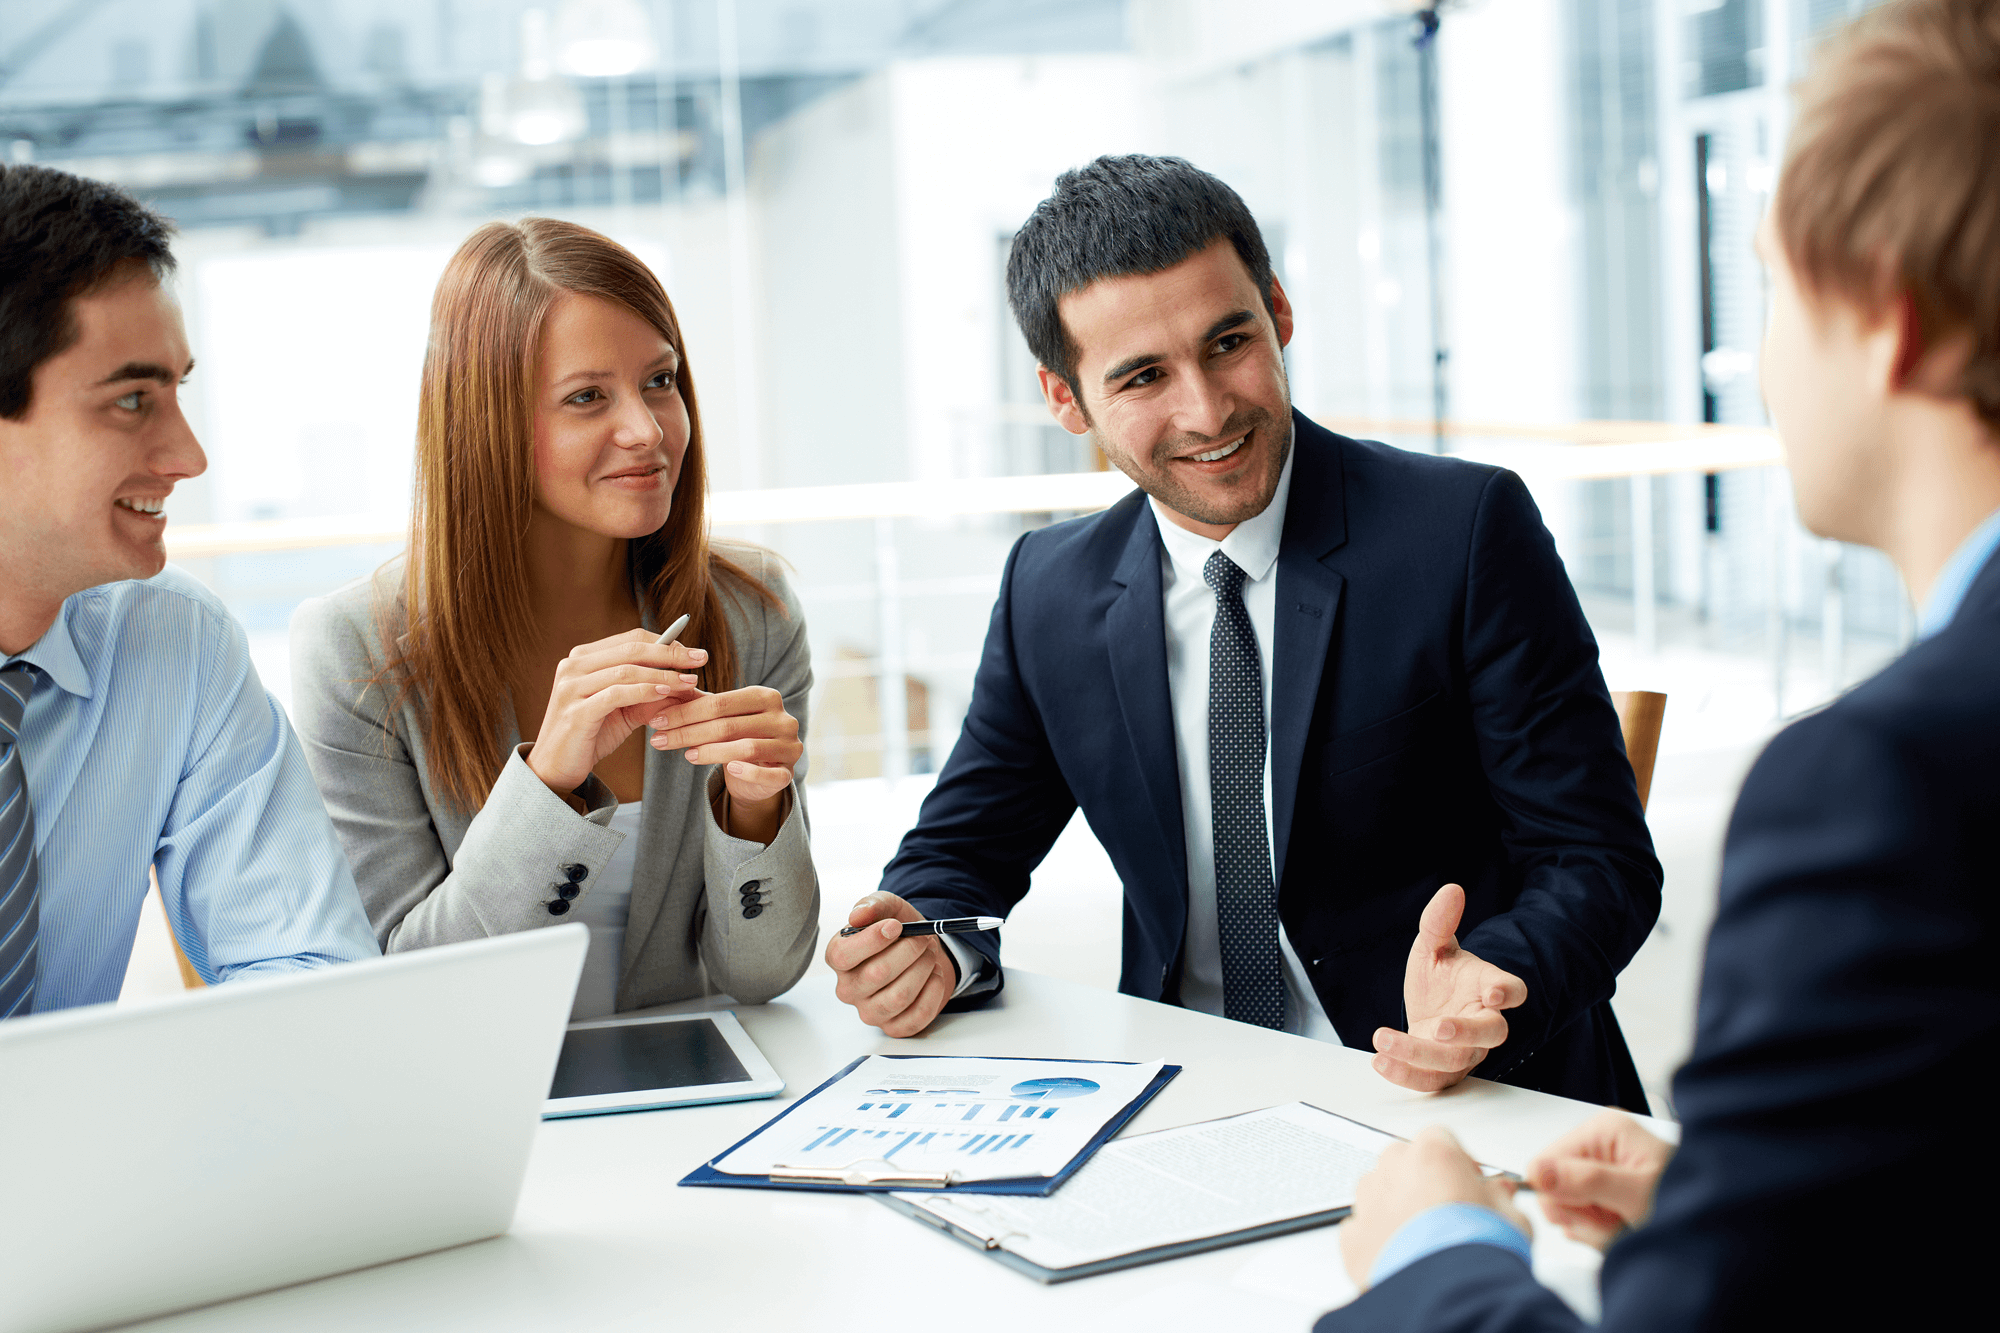 Performance Management | Communication | Why is it important?